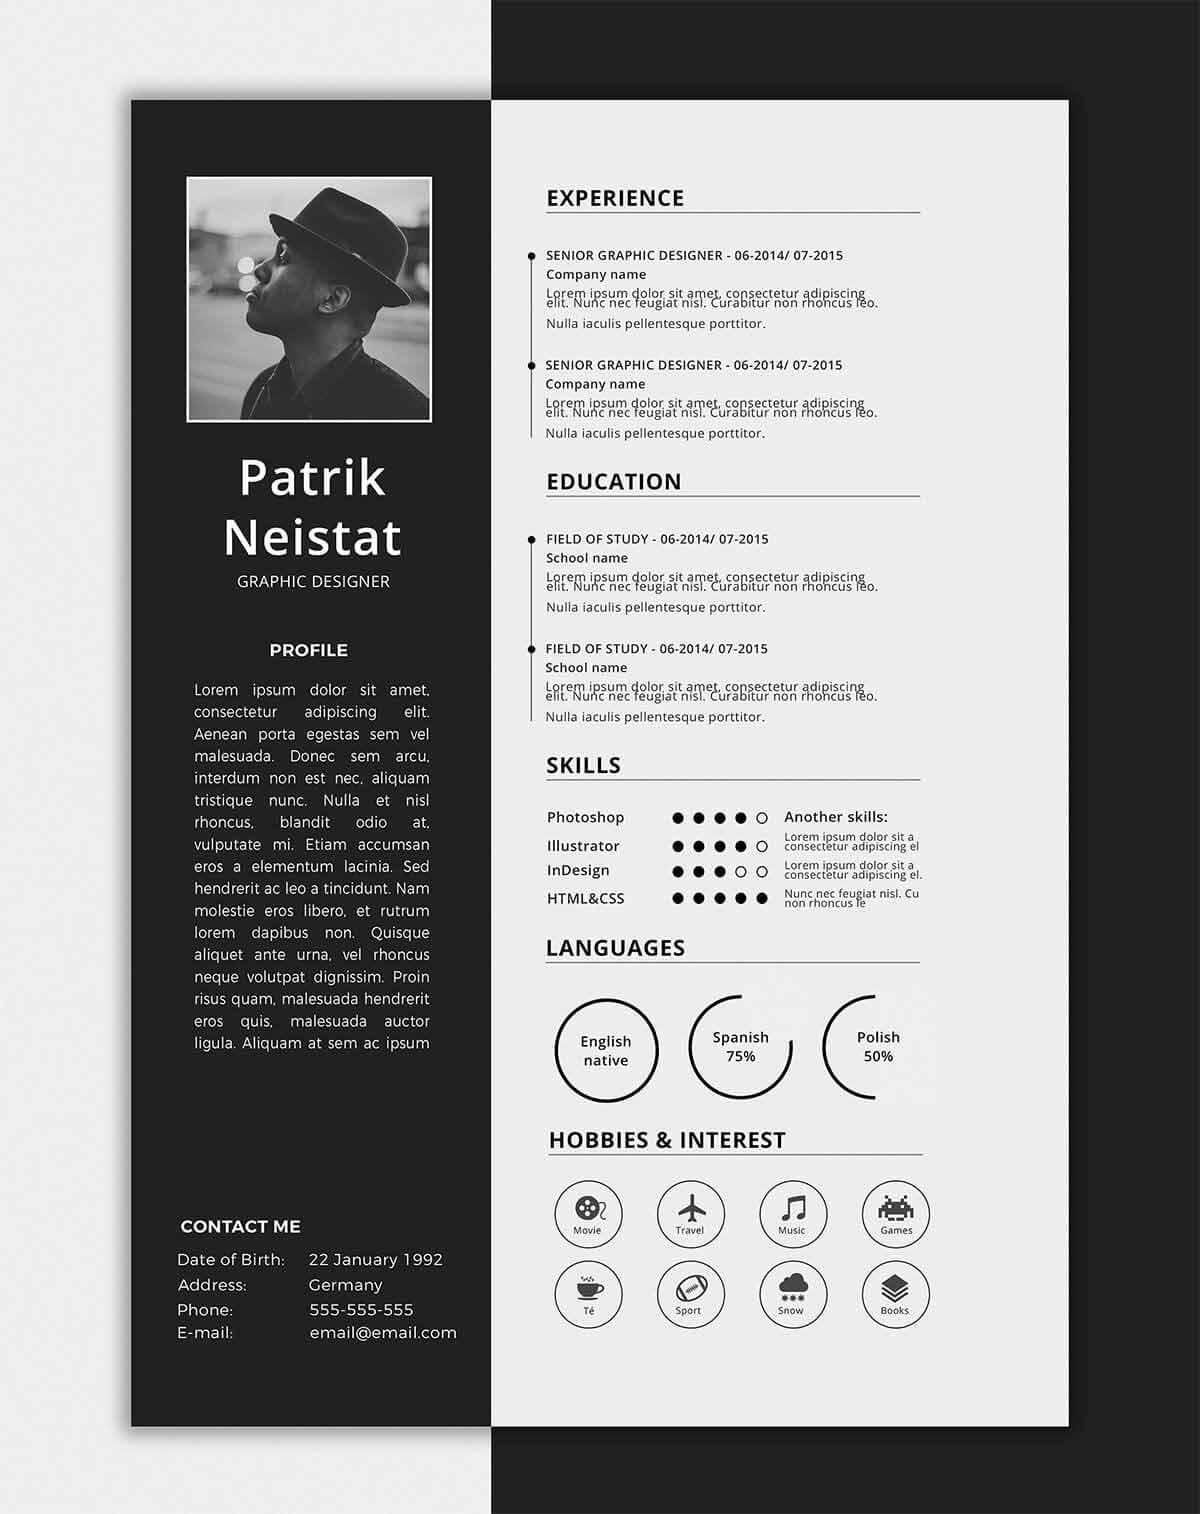 004 Wonderful 1 Page Resume Template Example  Templates One Basic Word Free Html DownloadFull